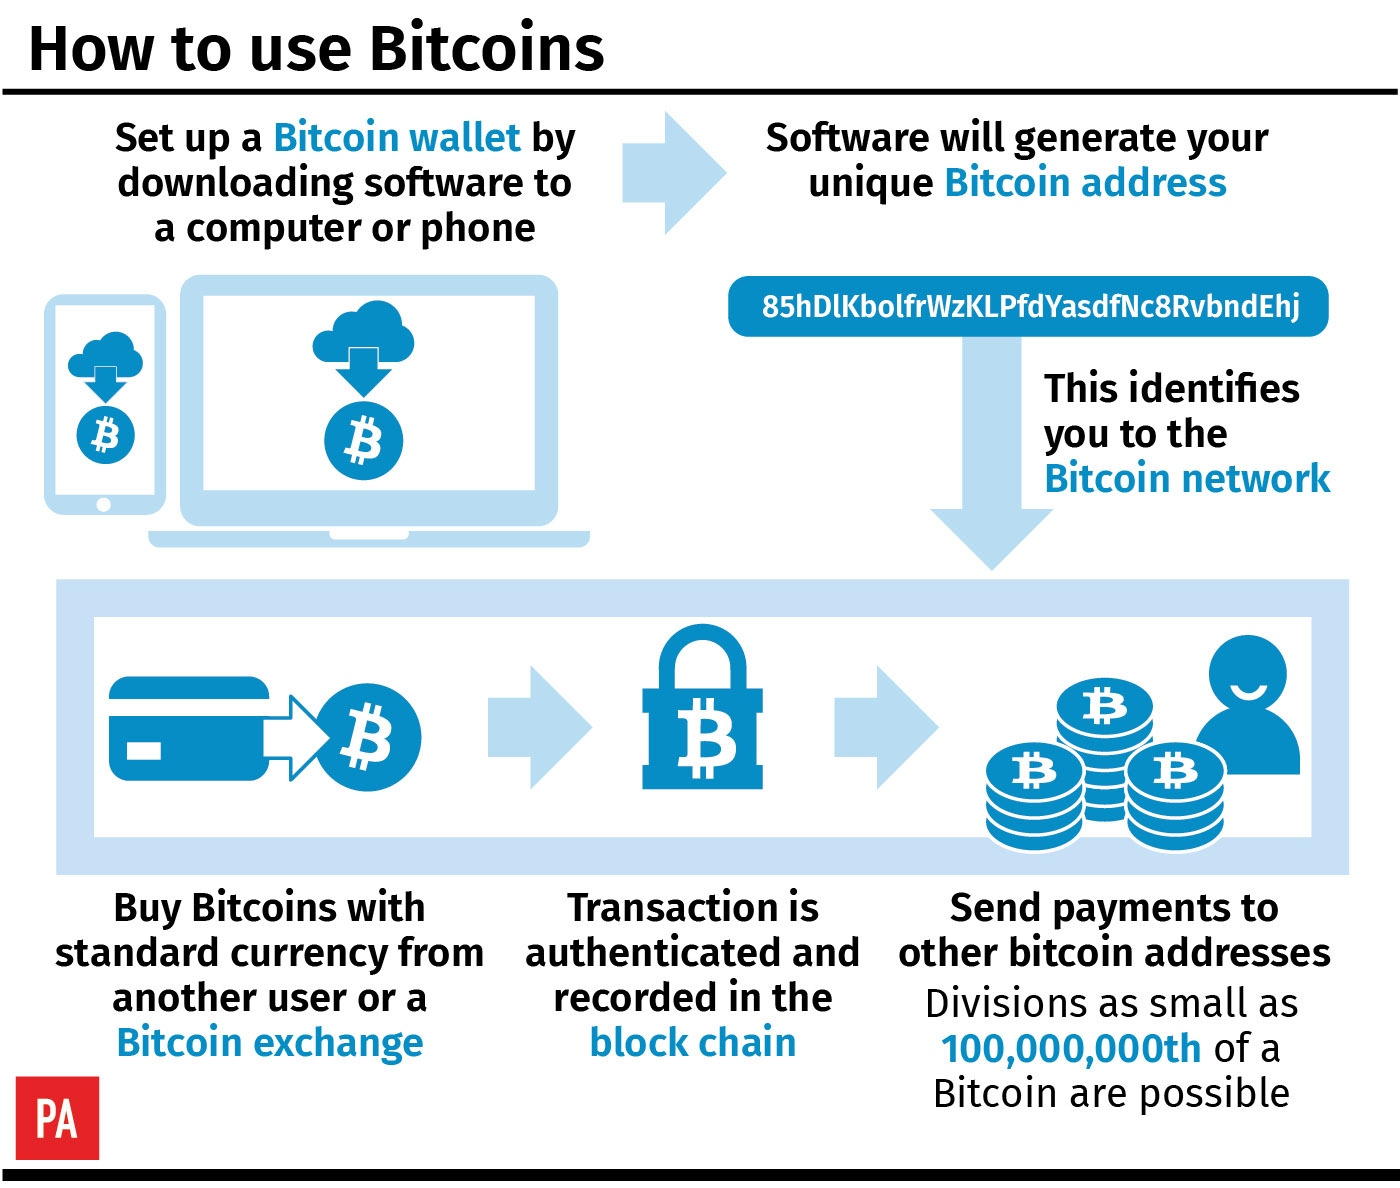 Diagram showing how bitcoin works. You set up a bitcoin wallet by downloading software, then a bitcoin address is generated, tying you to a network allowing you to transfer bitcoins between people or buying them with other currencies. Transactions are recorded in the blockchain.